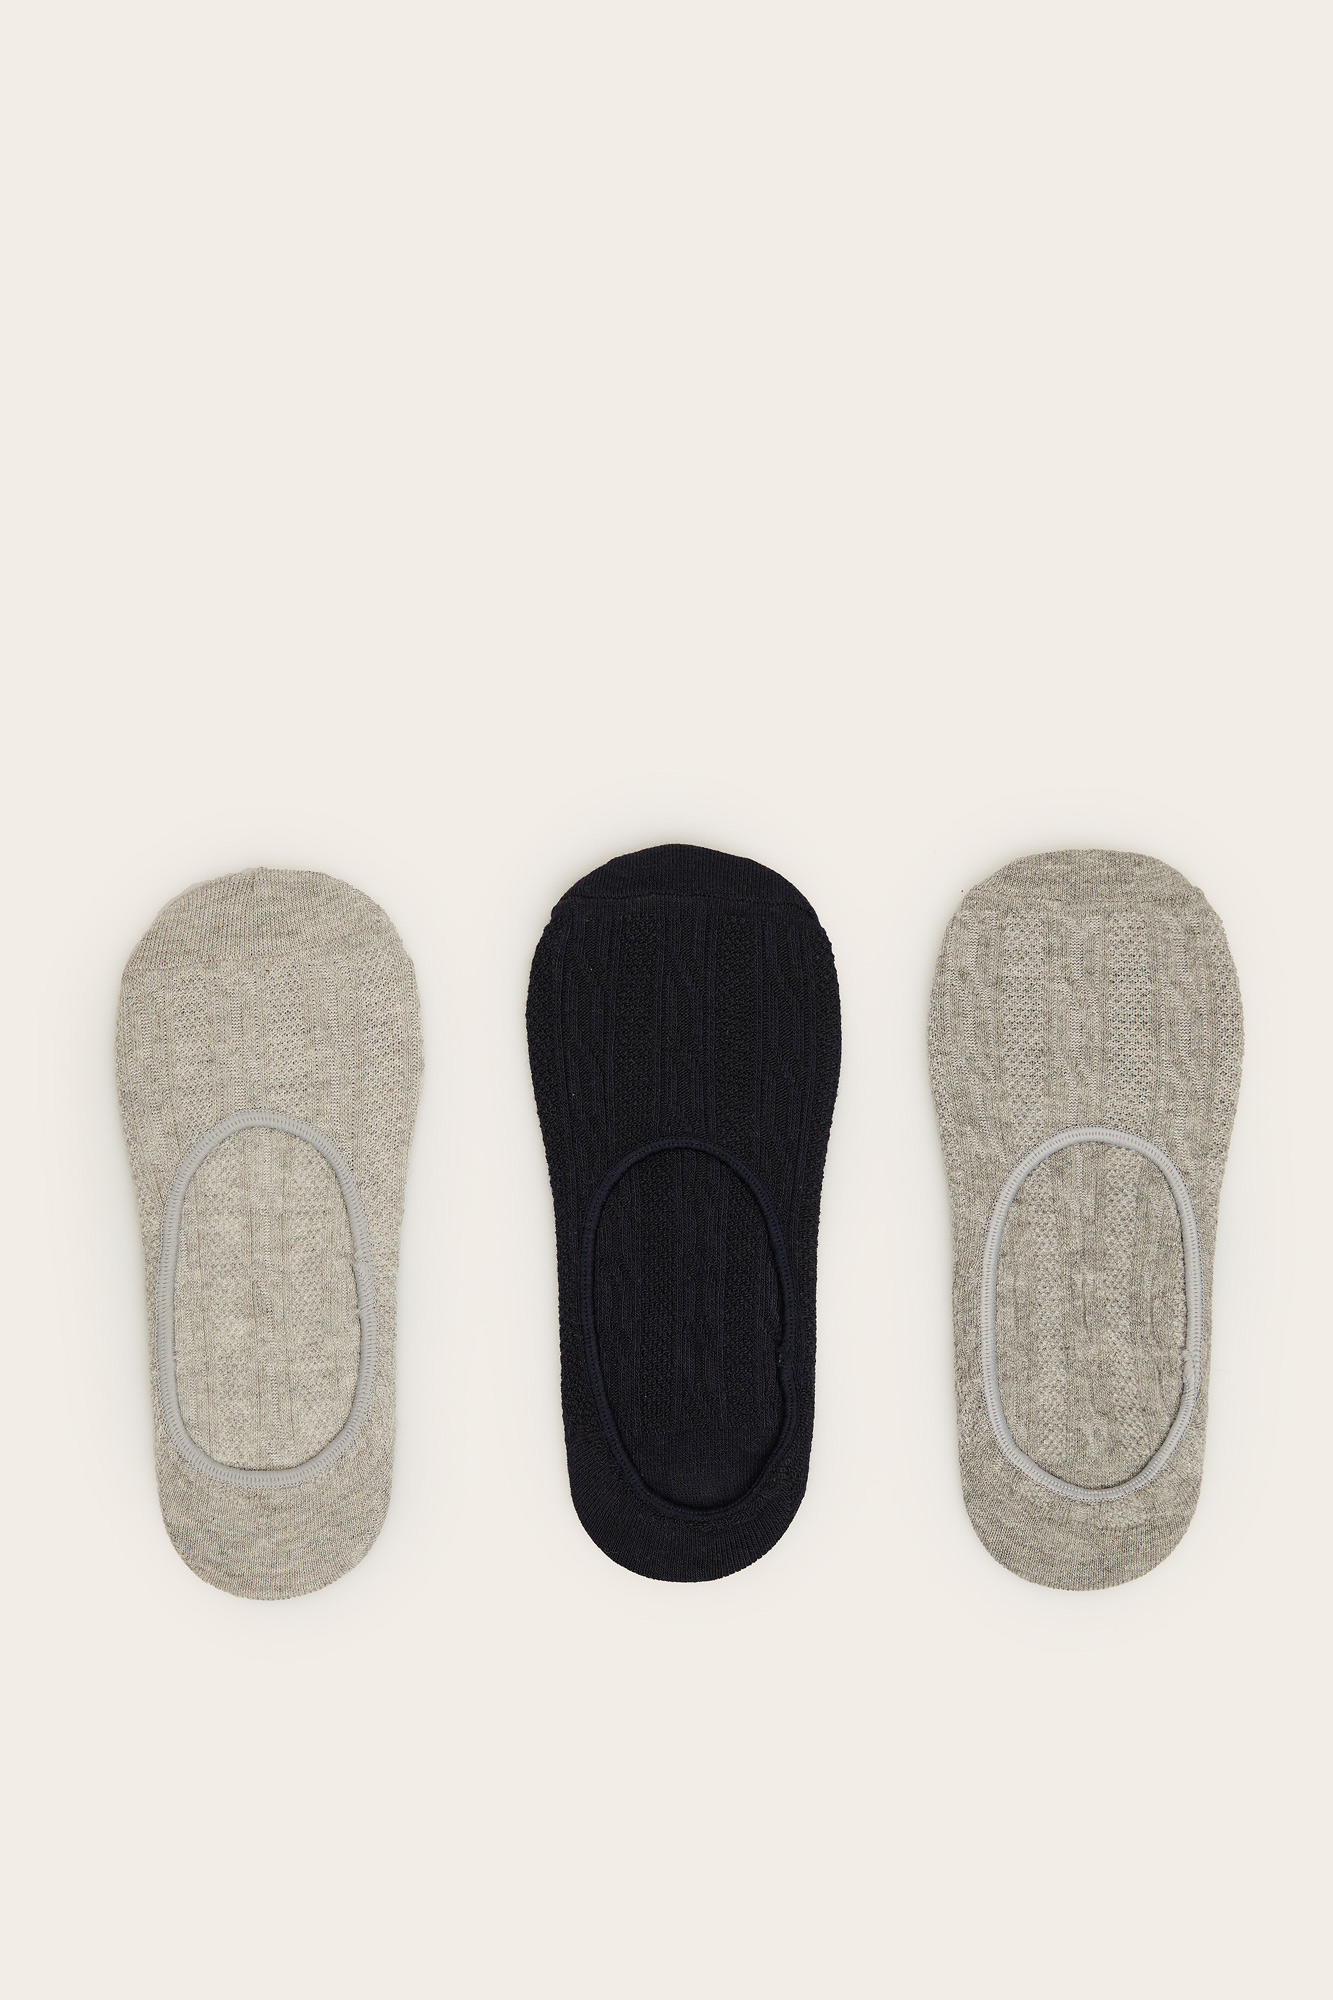 Pack de 3 calcetines invisibles